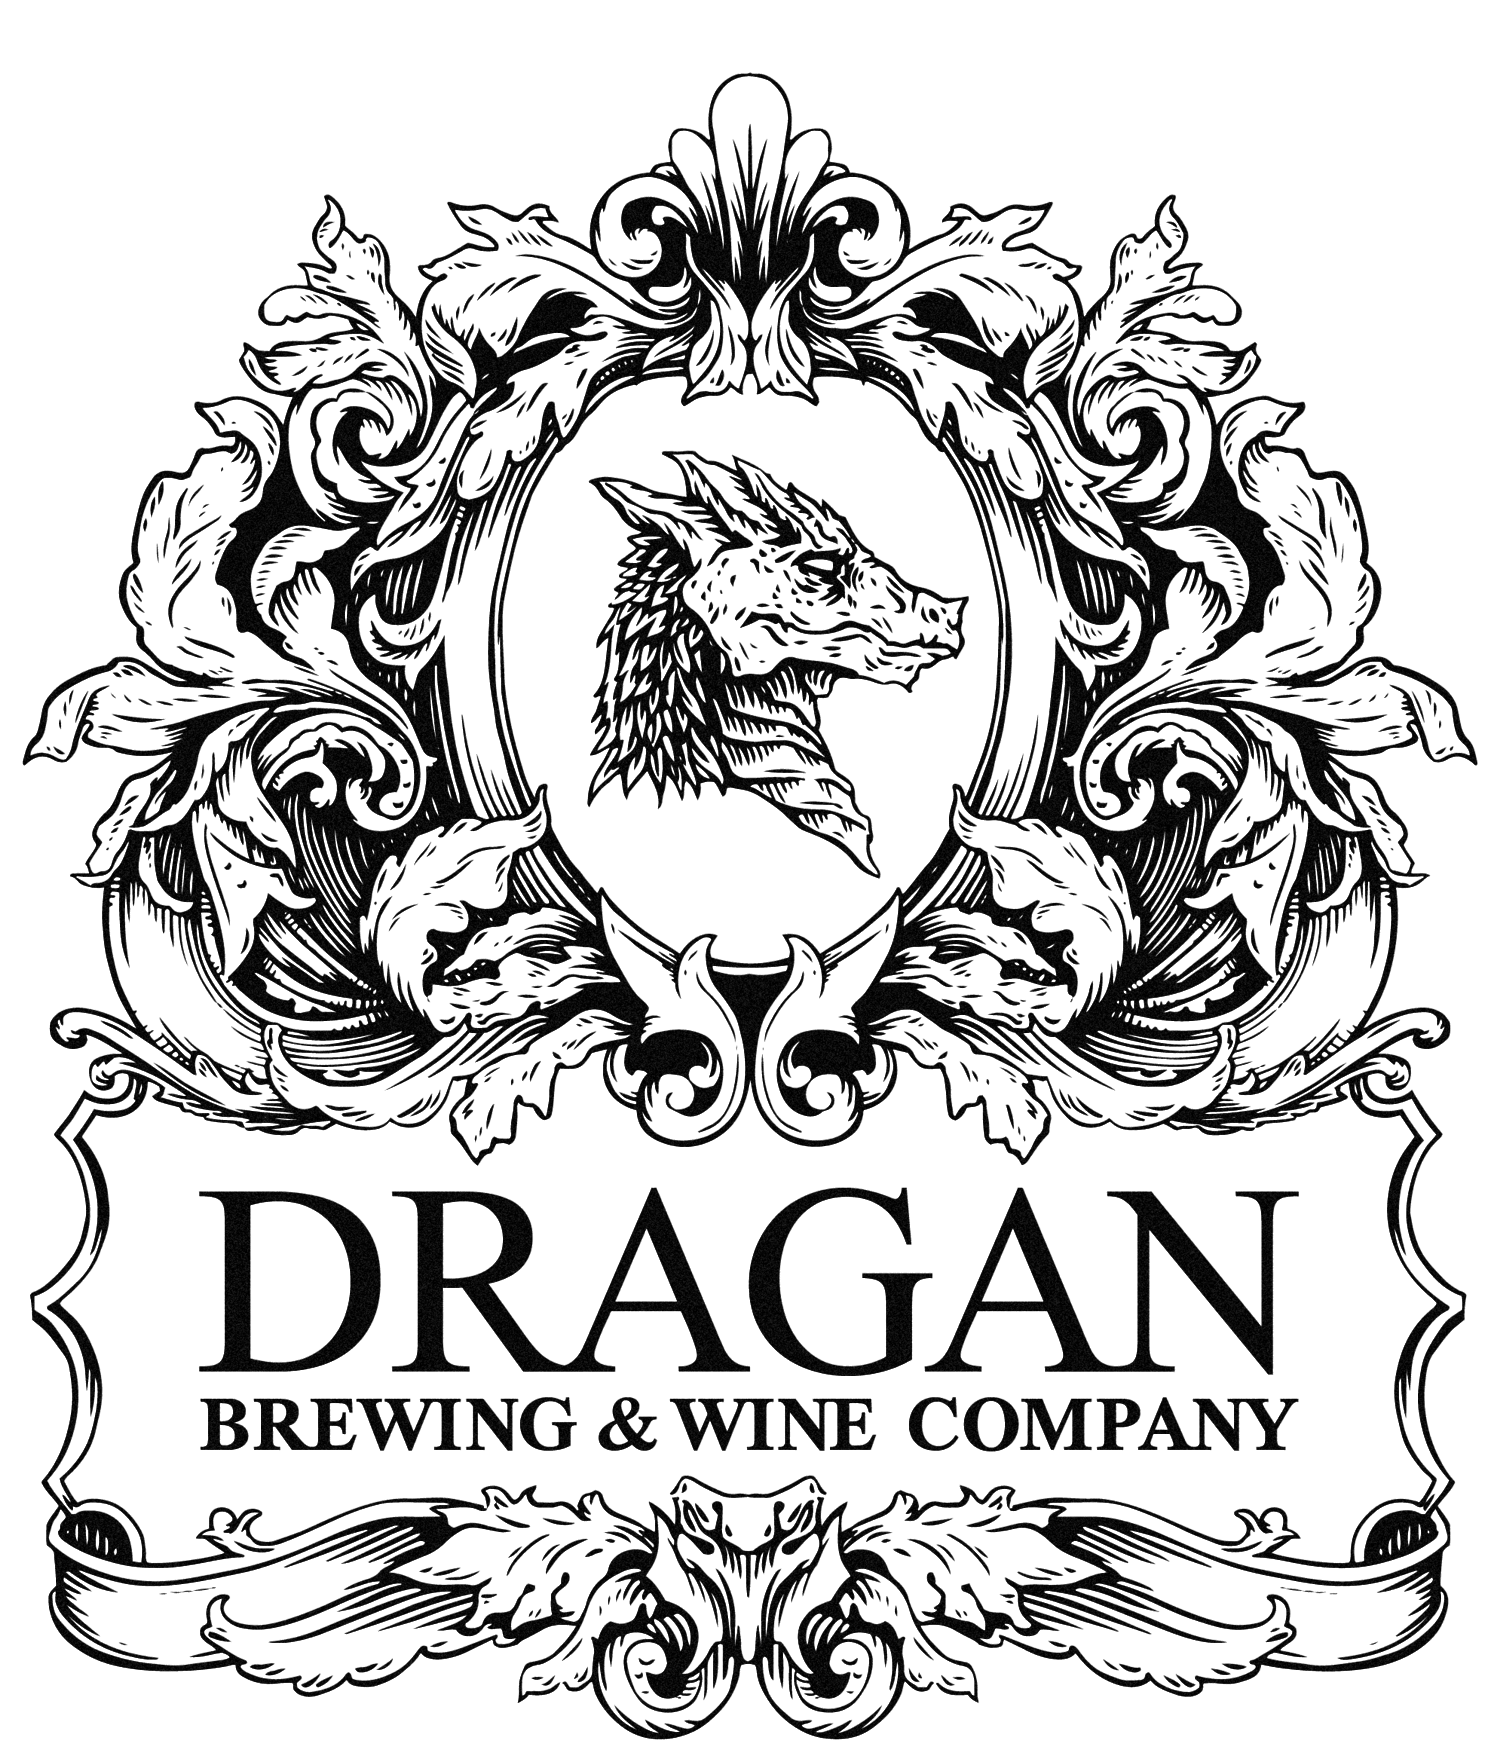 Dragan Brewing & Wine